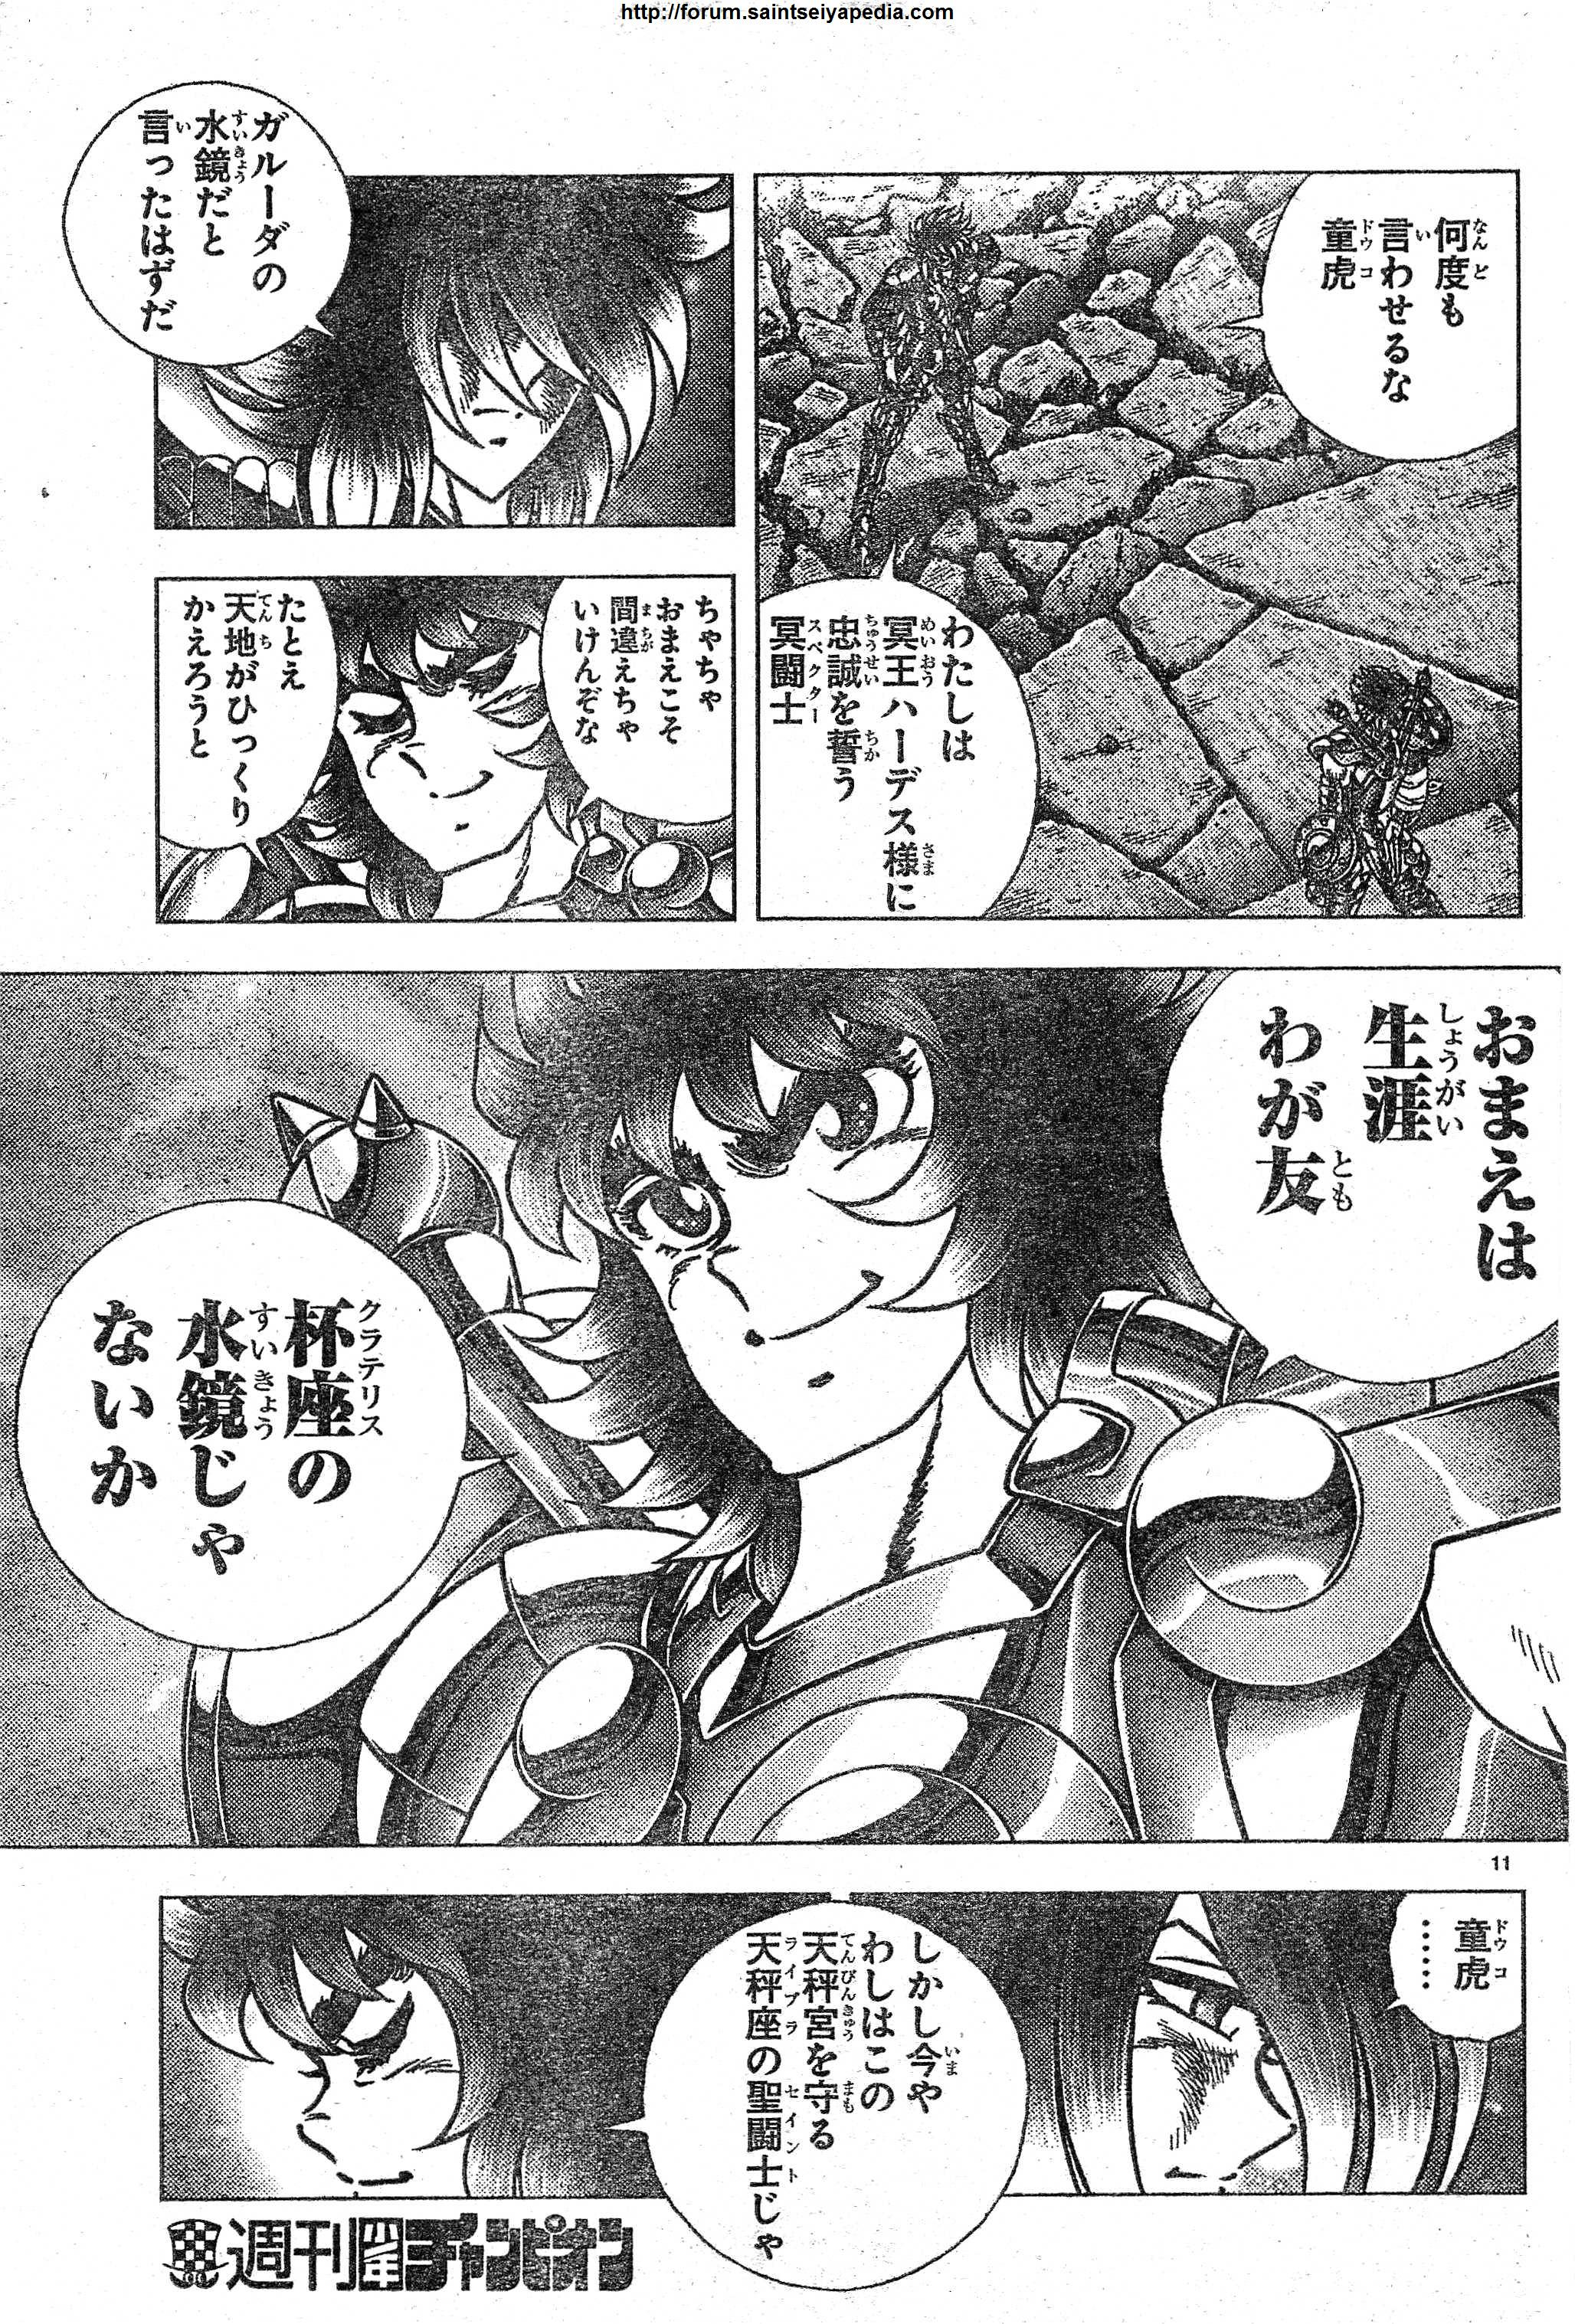 Saint Seiya - The Next Dimension - Chapitre 55 - 16